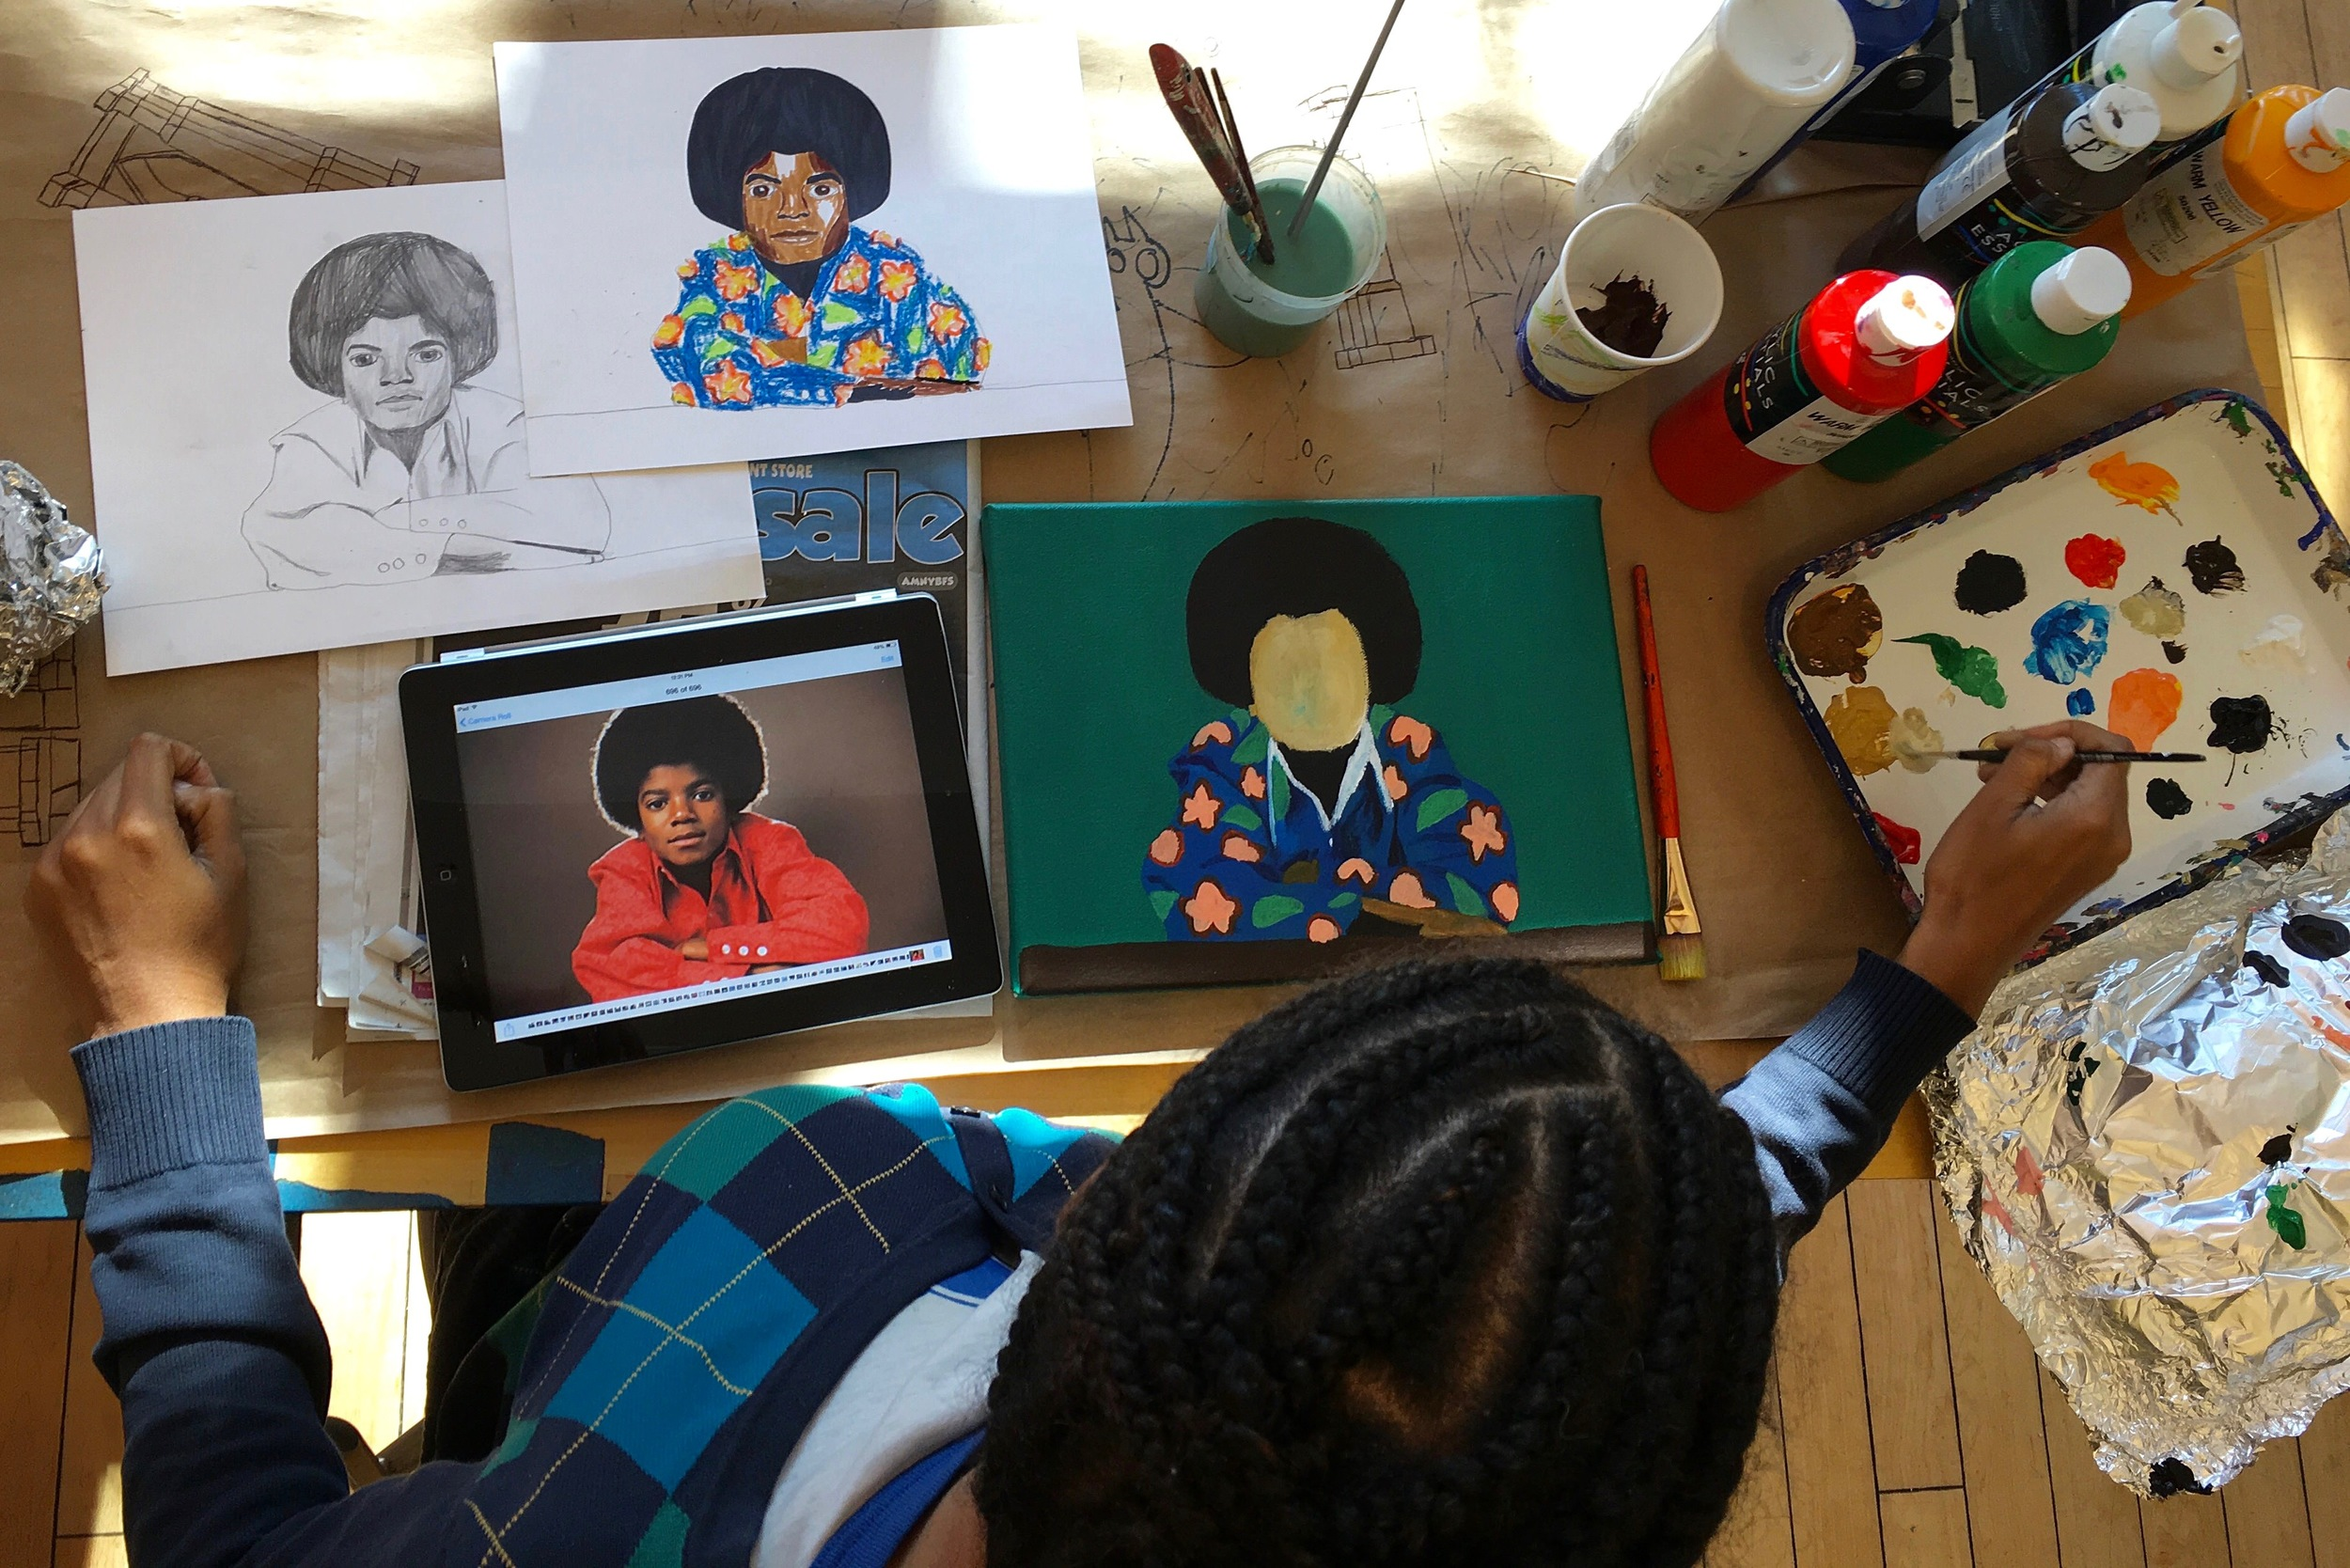 Myasia Dowdell at LAND Gallery